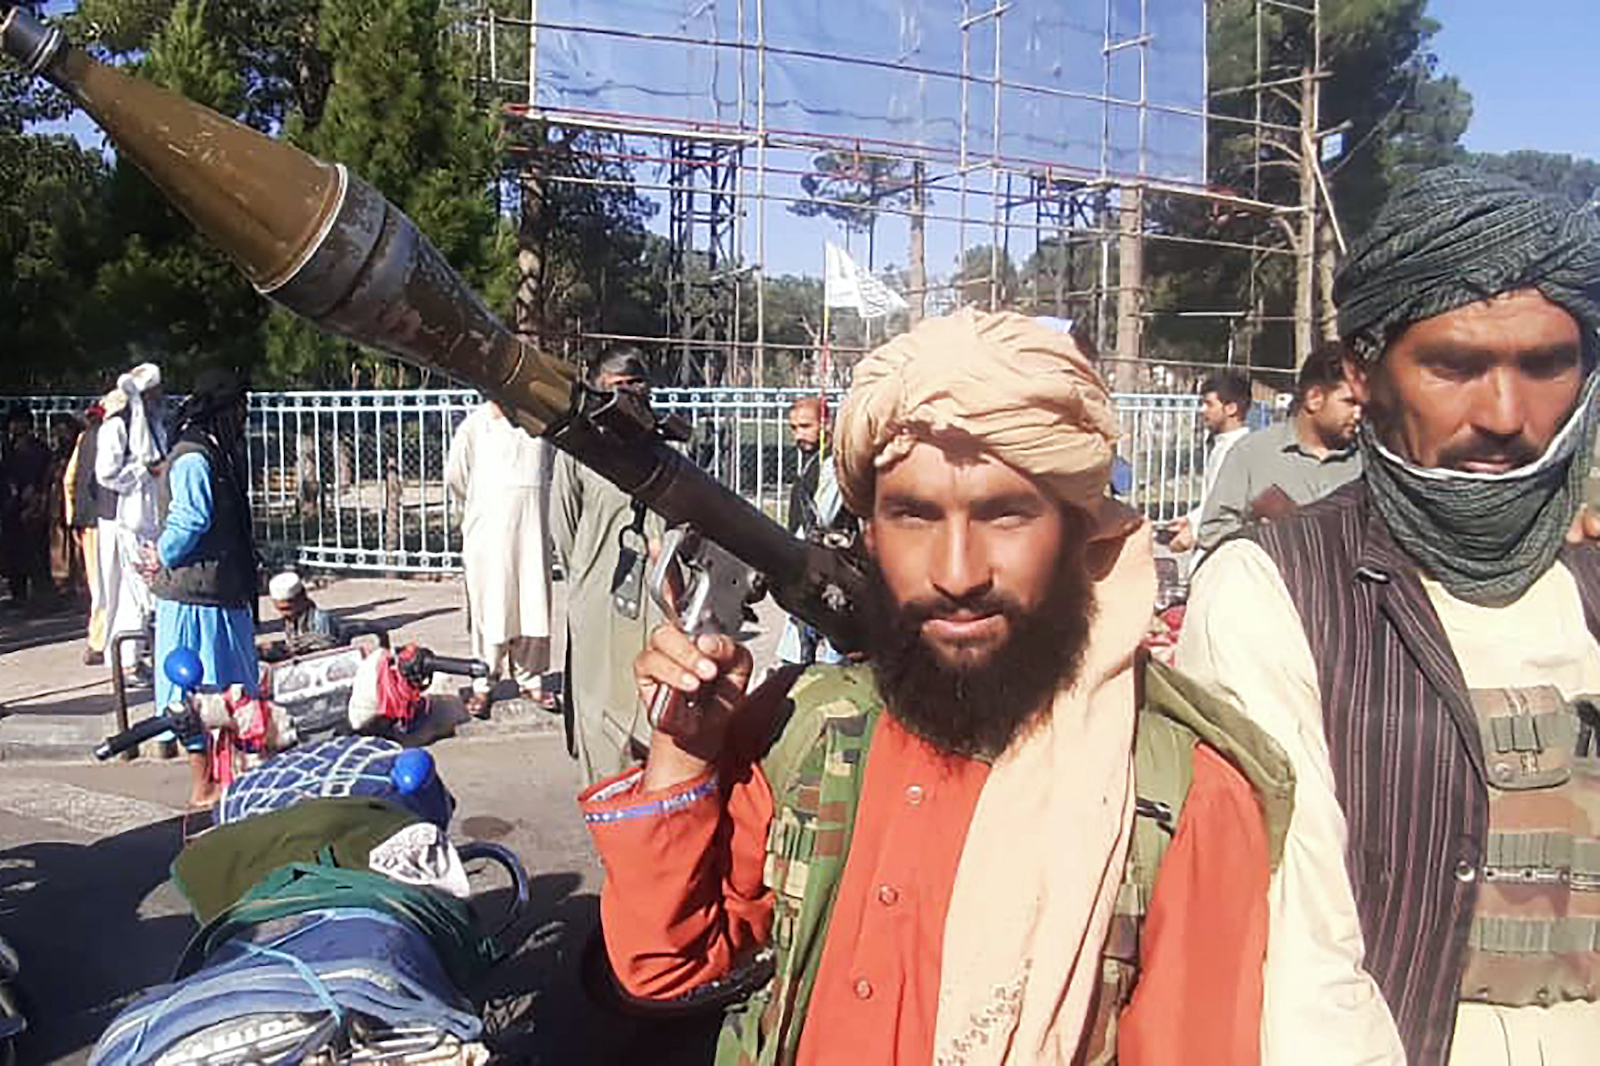 A Taliban fighter holds a rocket-propelled grenade (RPG) along the roadside in Herat, Afghanistan's third biggest city, after government forces pulled out the day before following weeks of being under siege, August 13, 2021. Photo: AFP